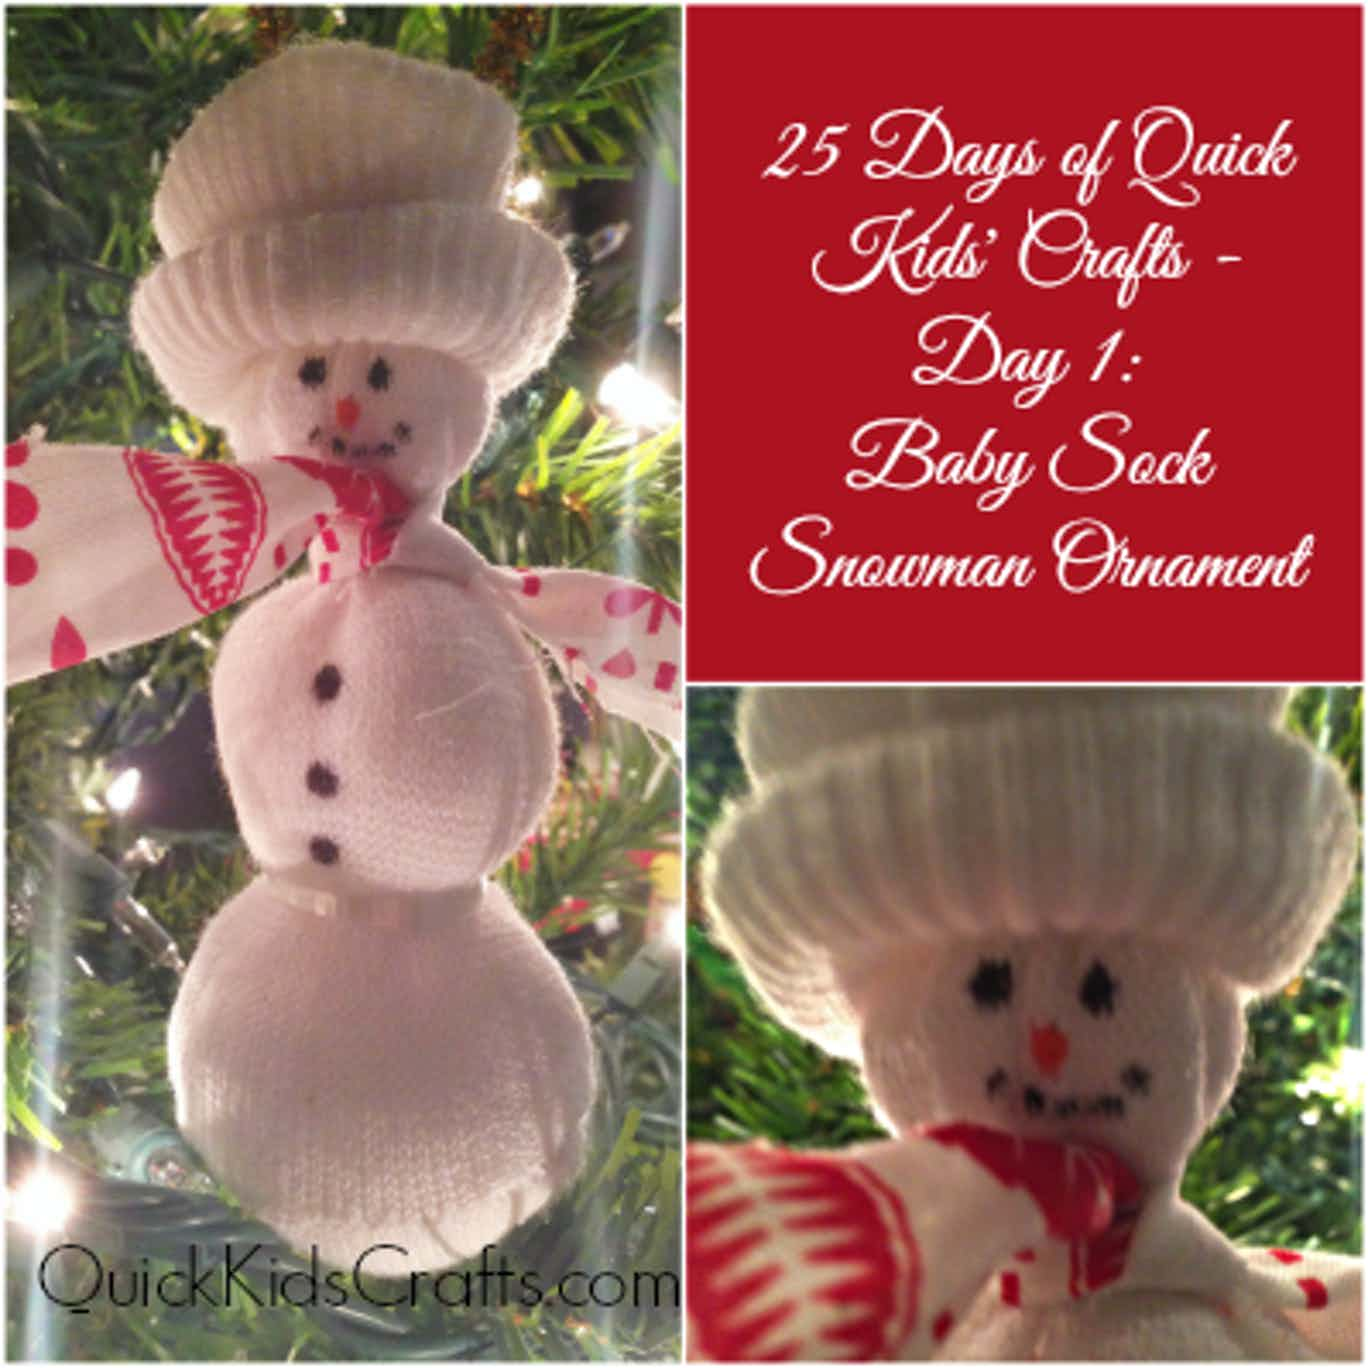 Baby Sock Snowman Ornament